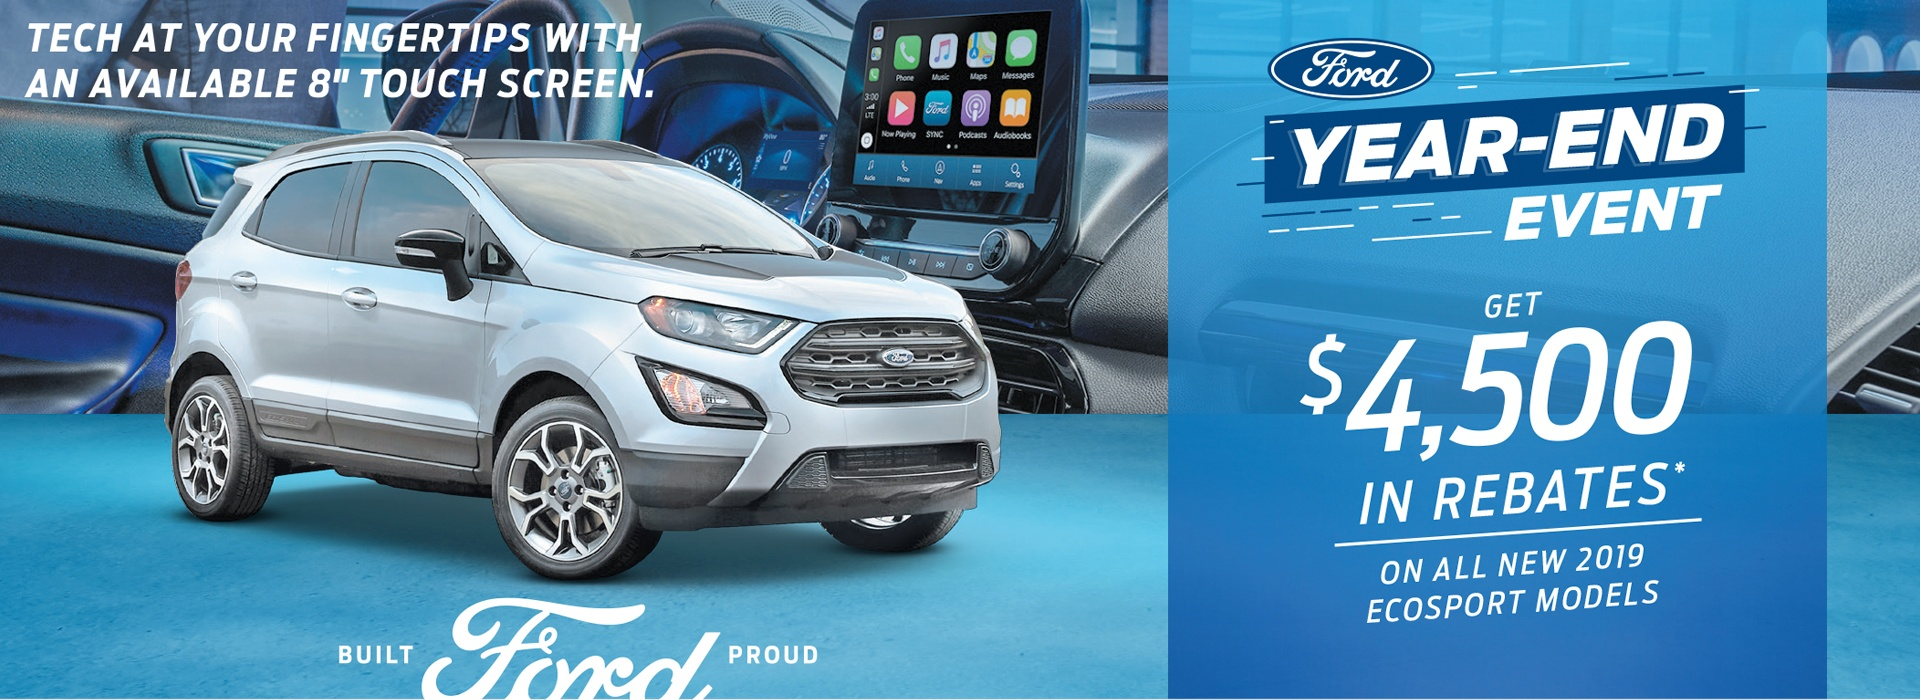 Ford EcoSport Special Offer